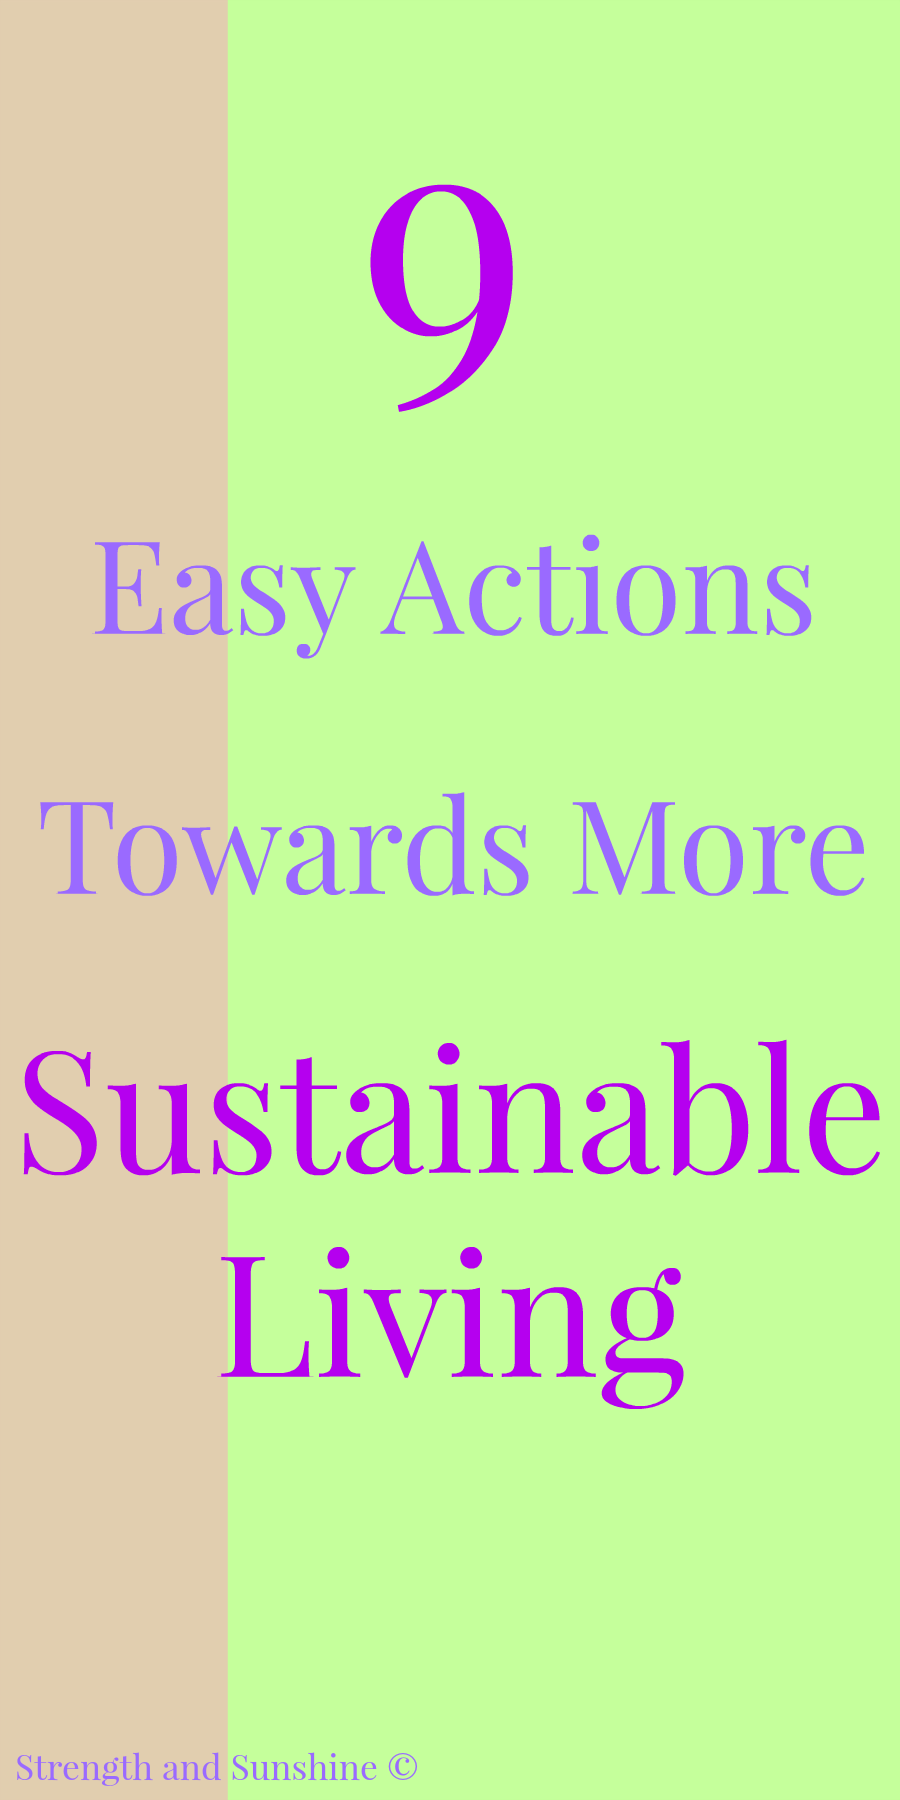 9 Easy Actions Towards More Sustainable Living | Strength and Sunshine @RebeccaGF666 9 easy and actionable steps anyone can take toward more sustainable living. Not only can we improve our impact on the environment, society, and health, but also our happiness! ad #TetraPak #RenewableLiving